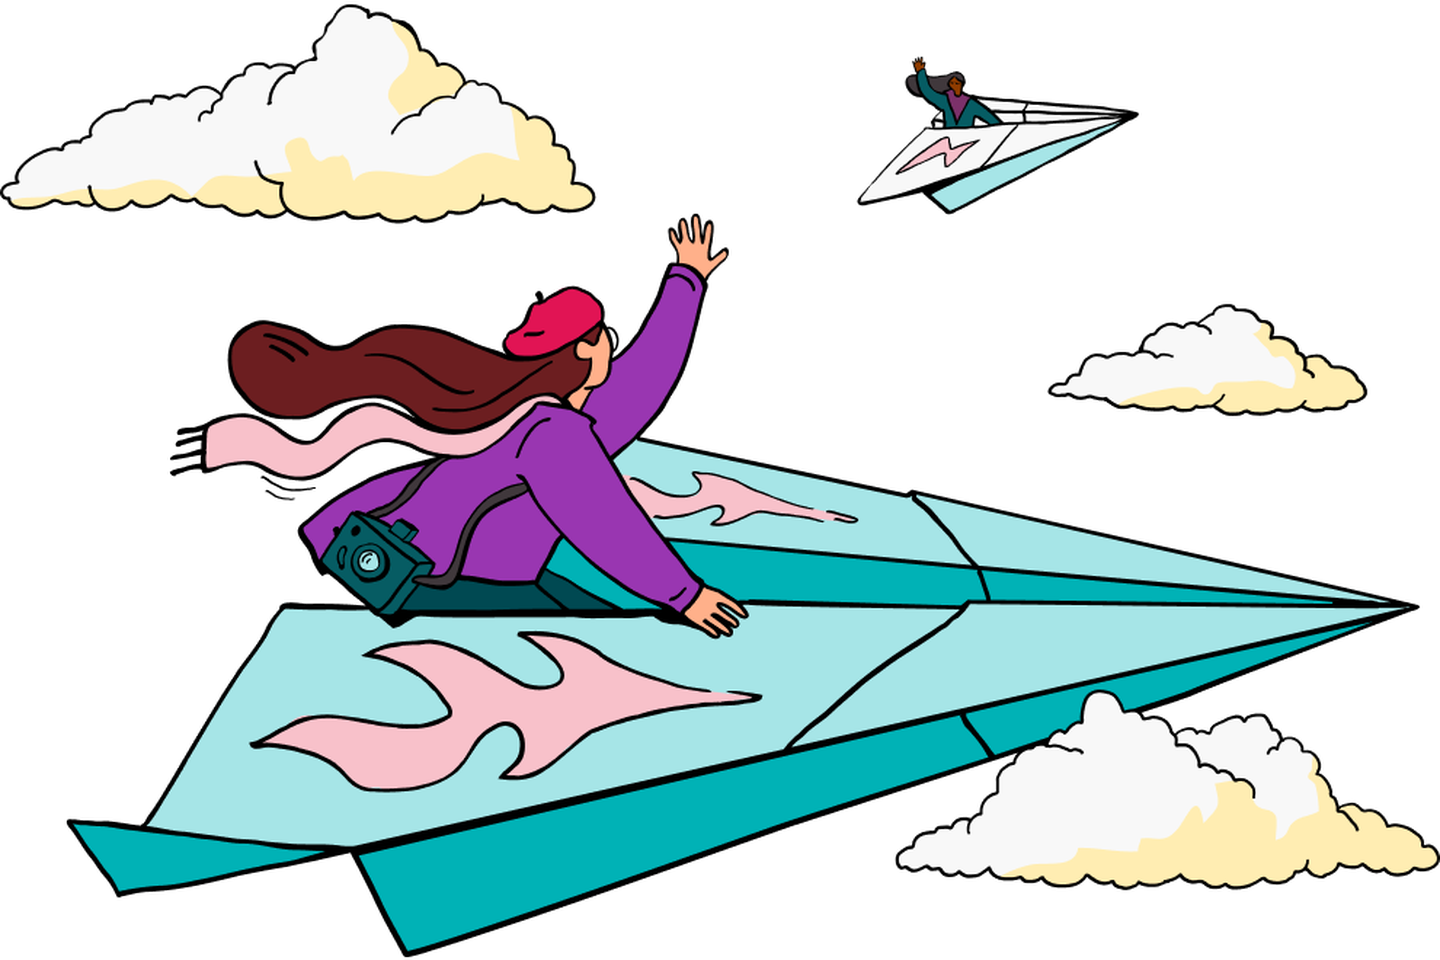 Illustration of a person sitting atop of a paper plane flying in the sky.